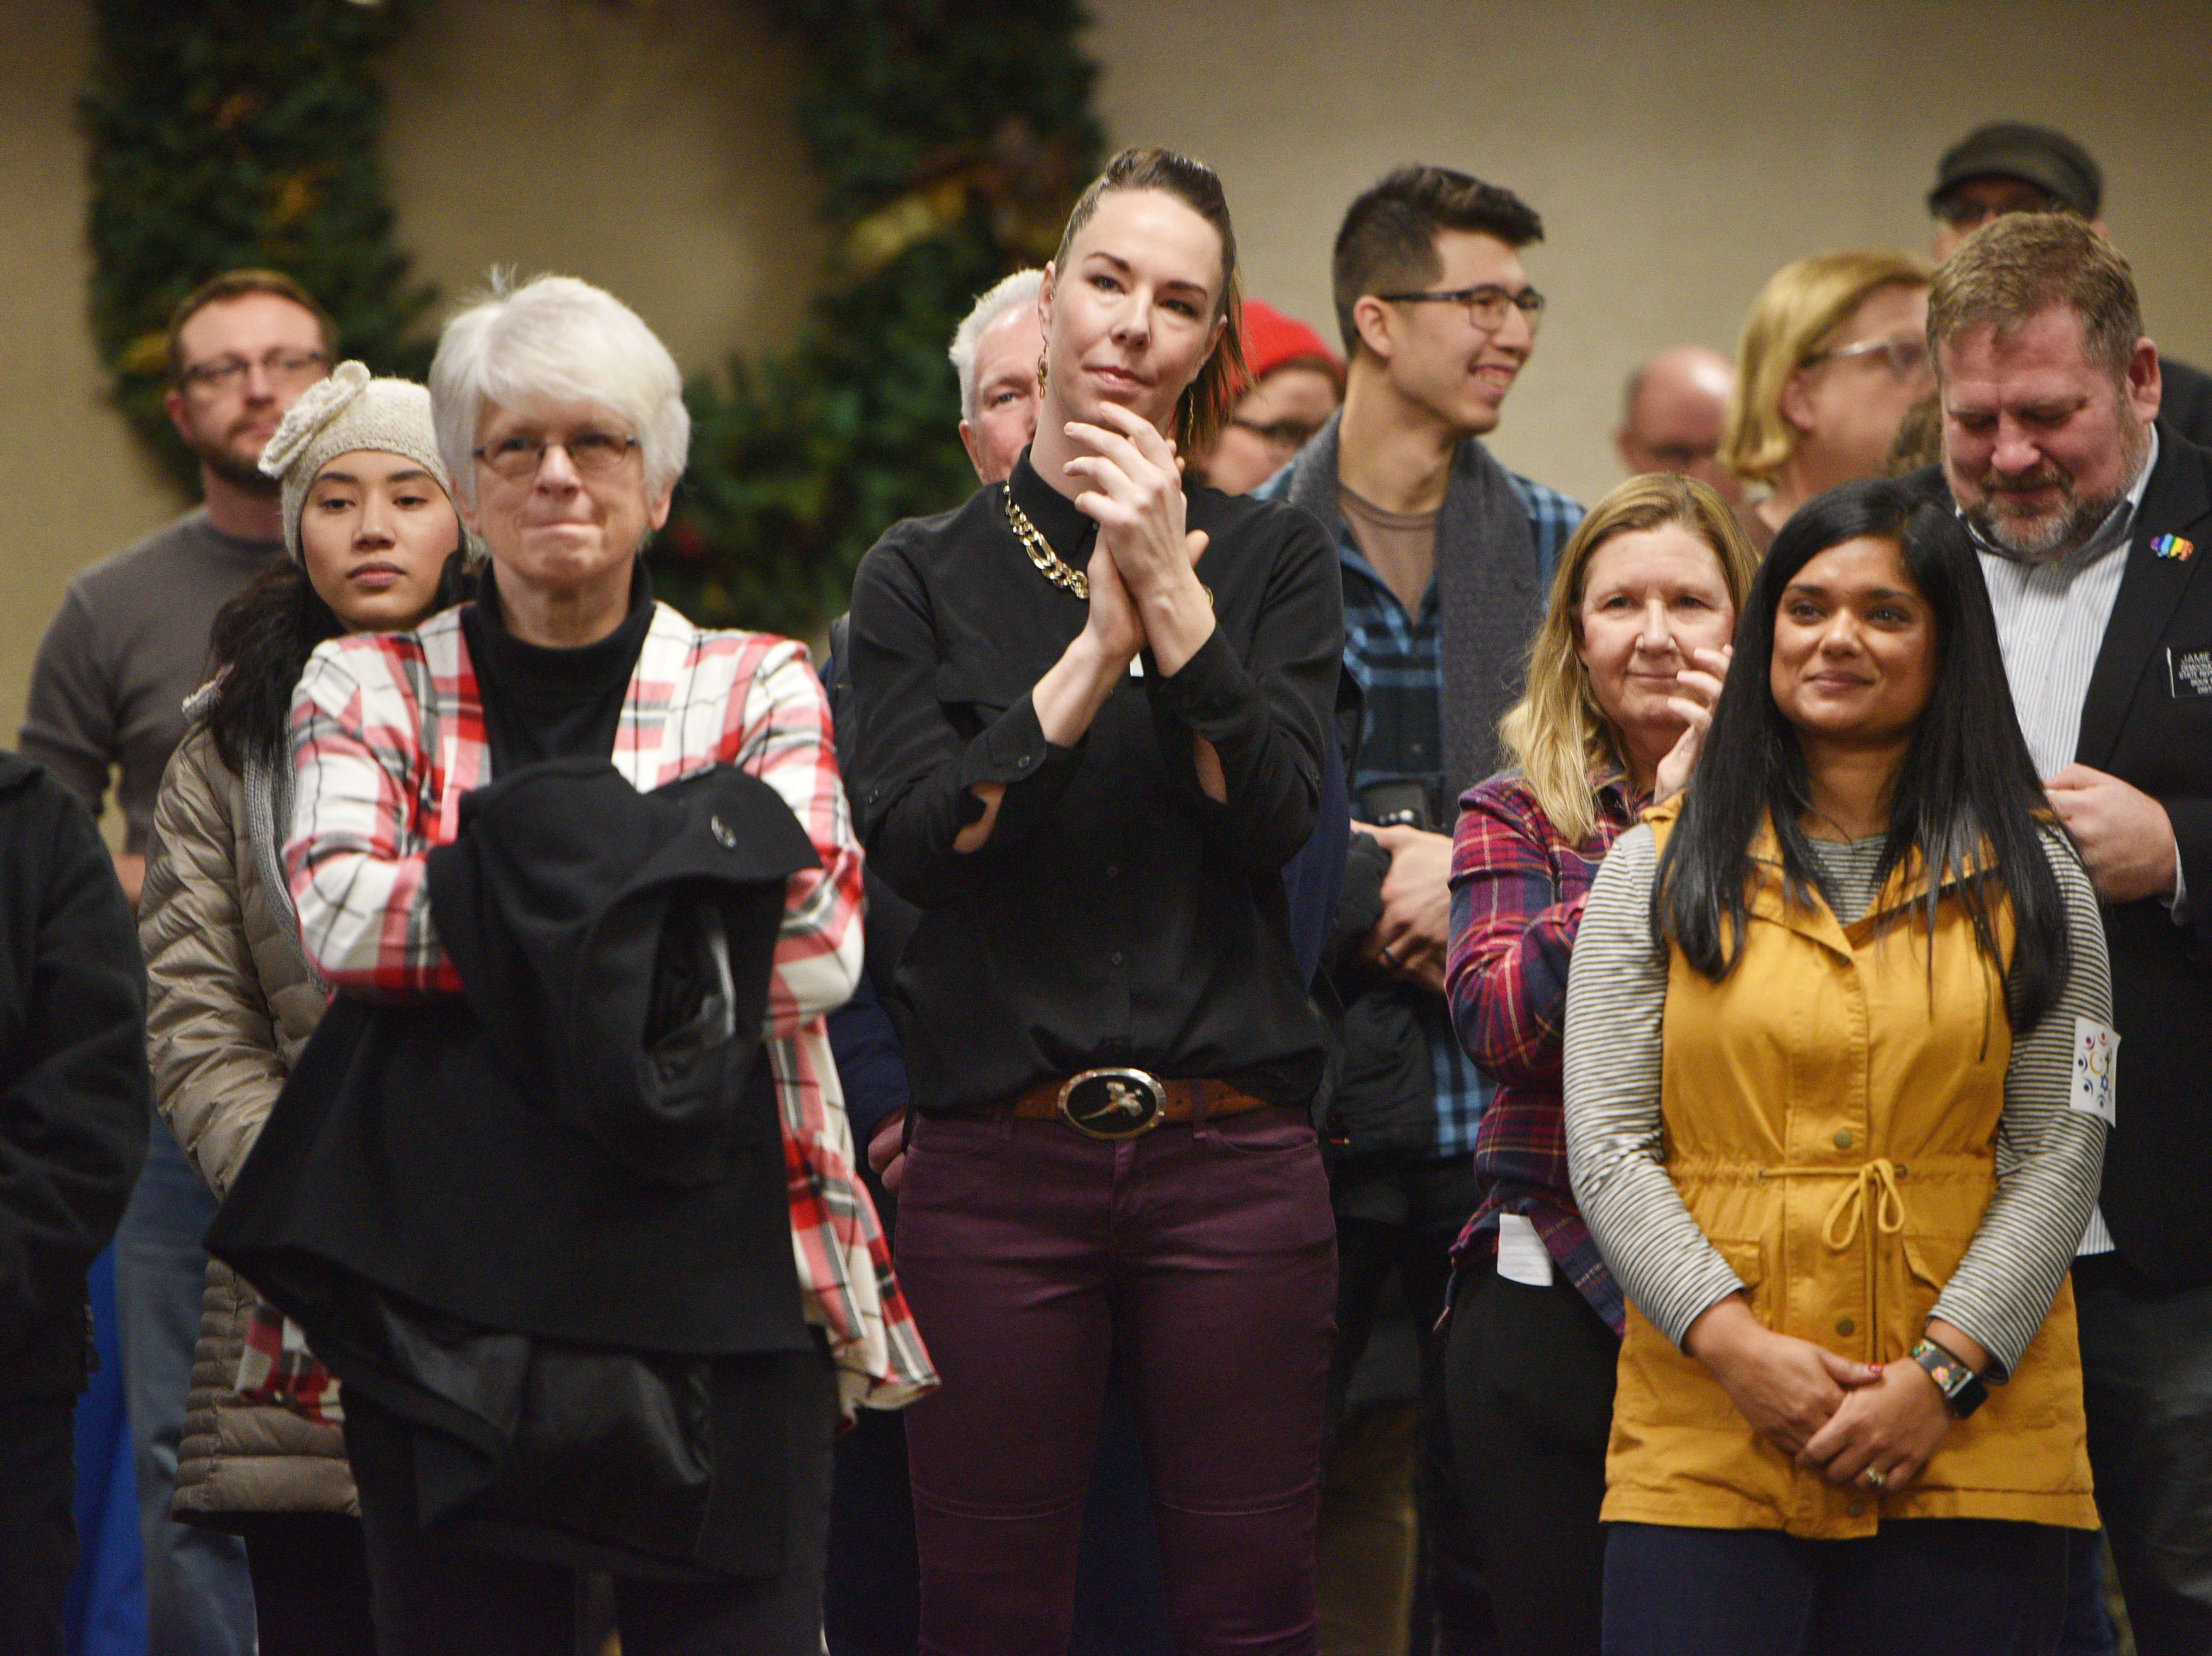 Representative Kelly Sullivan, center, is among the attendees at the Women's March Saturday, Jan. 19, at the Downtown Sioux Falls Holiday Inn-City Centre in Sioux Falls.